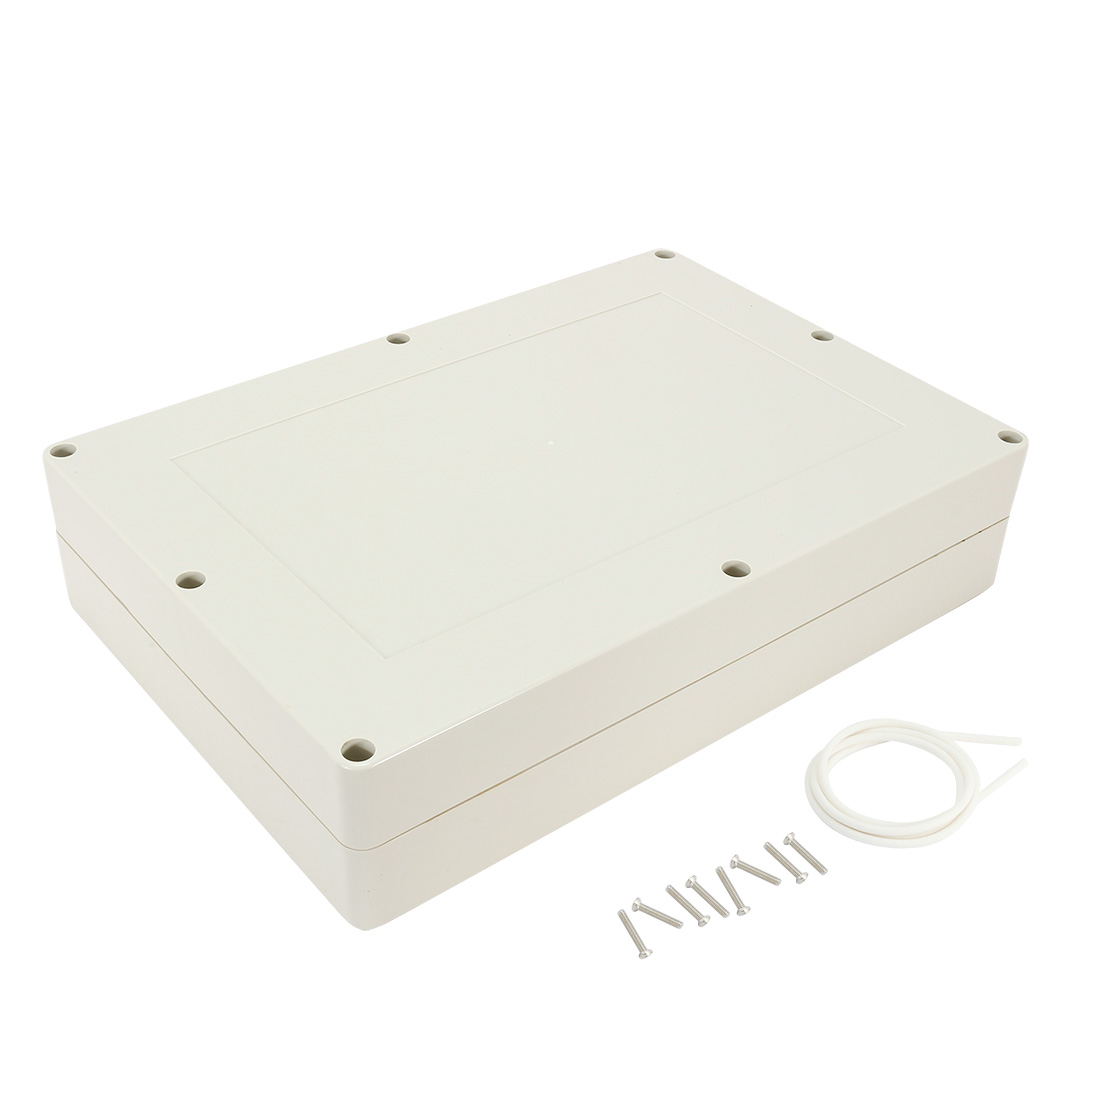 """15""""x10.2""""x3.4""""(380mmx260mmx85mm) ABS Junction Box Universal Electric Project Enclosure"""